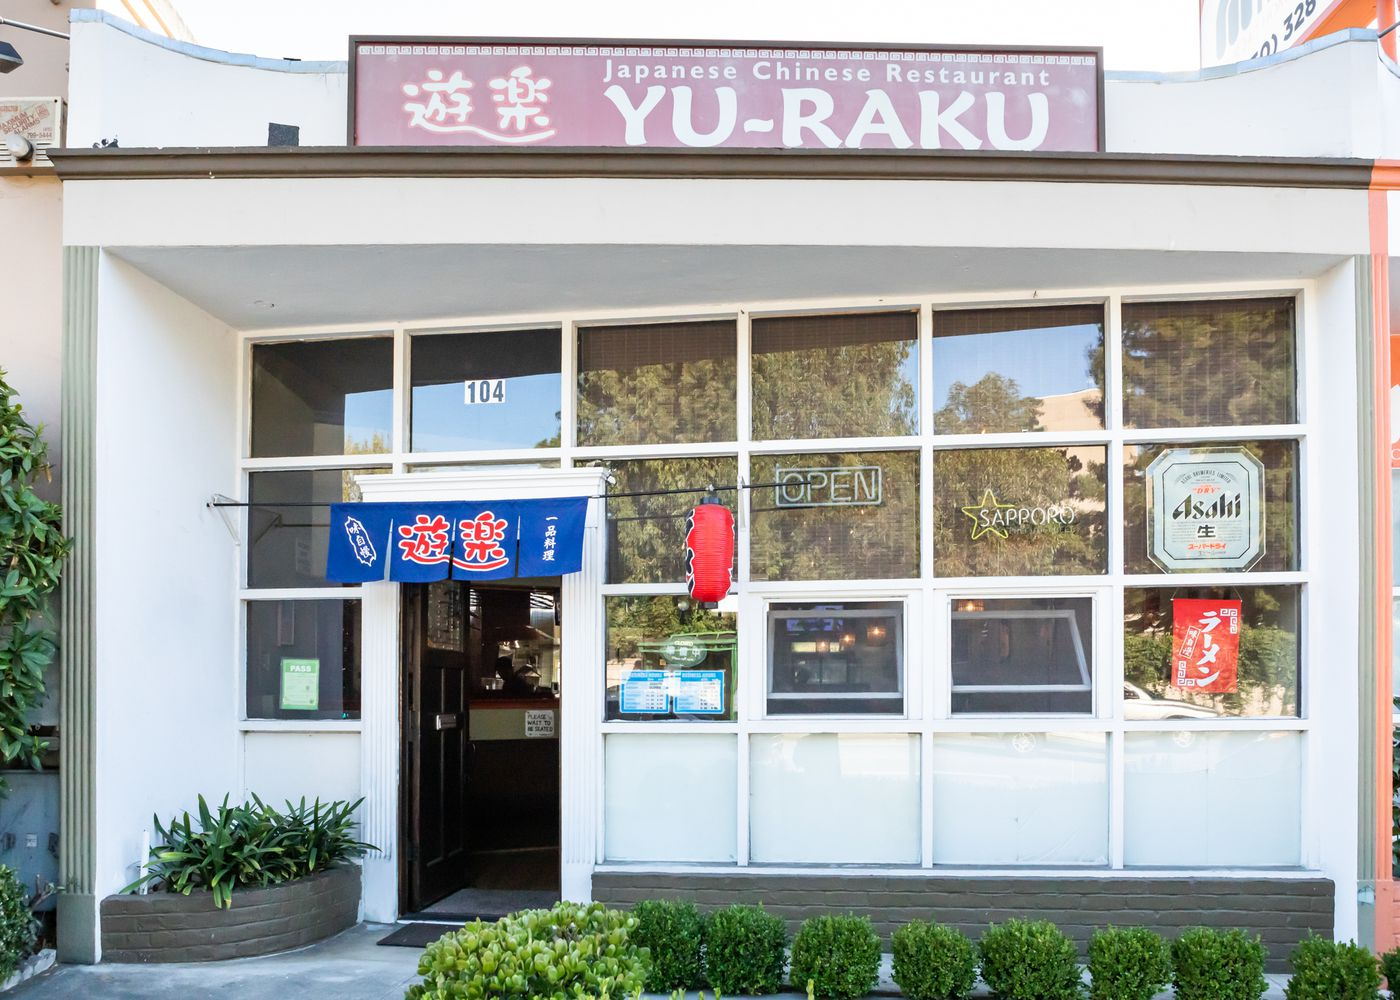 Where to Eat Japanese Food in San Mateo, Where Historic